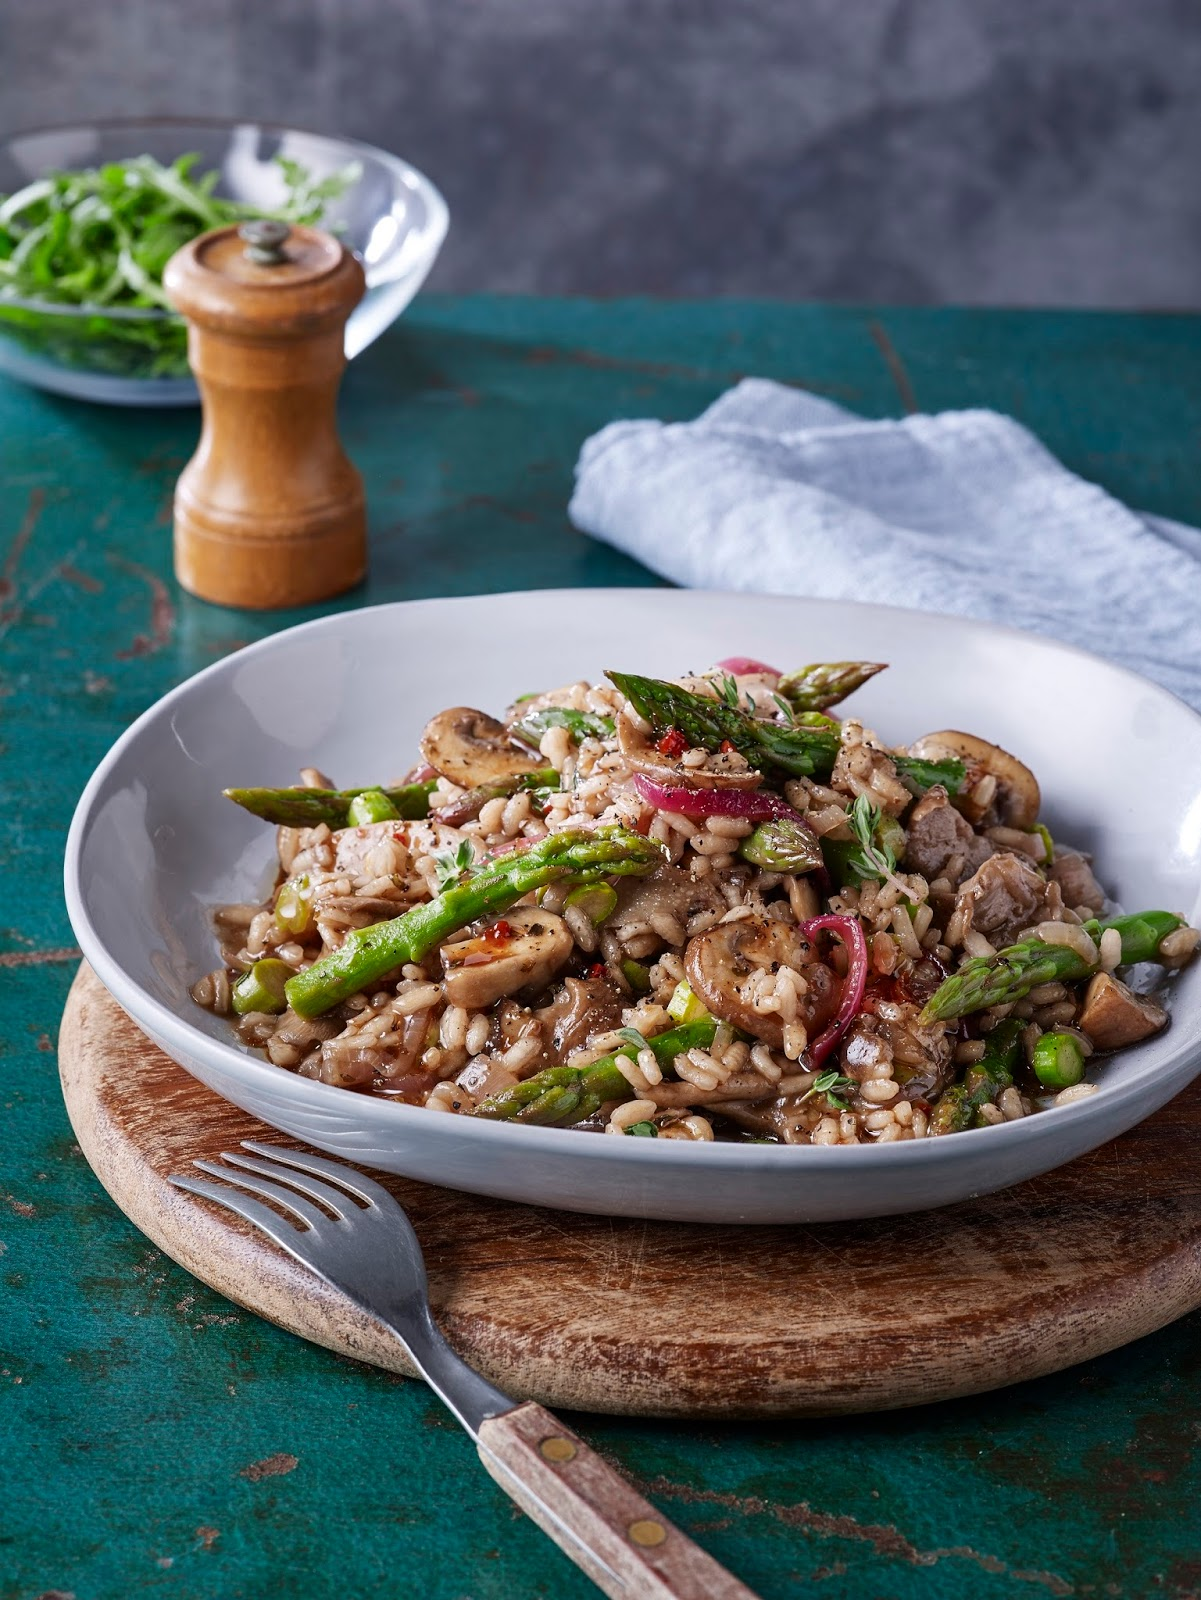 Balsamic Asparagus And Mushroom Risotto